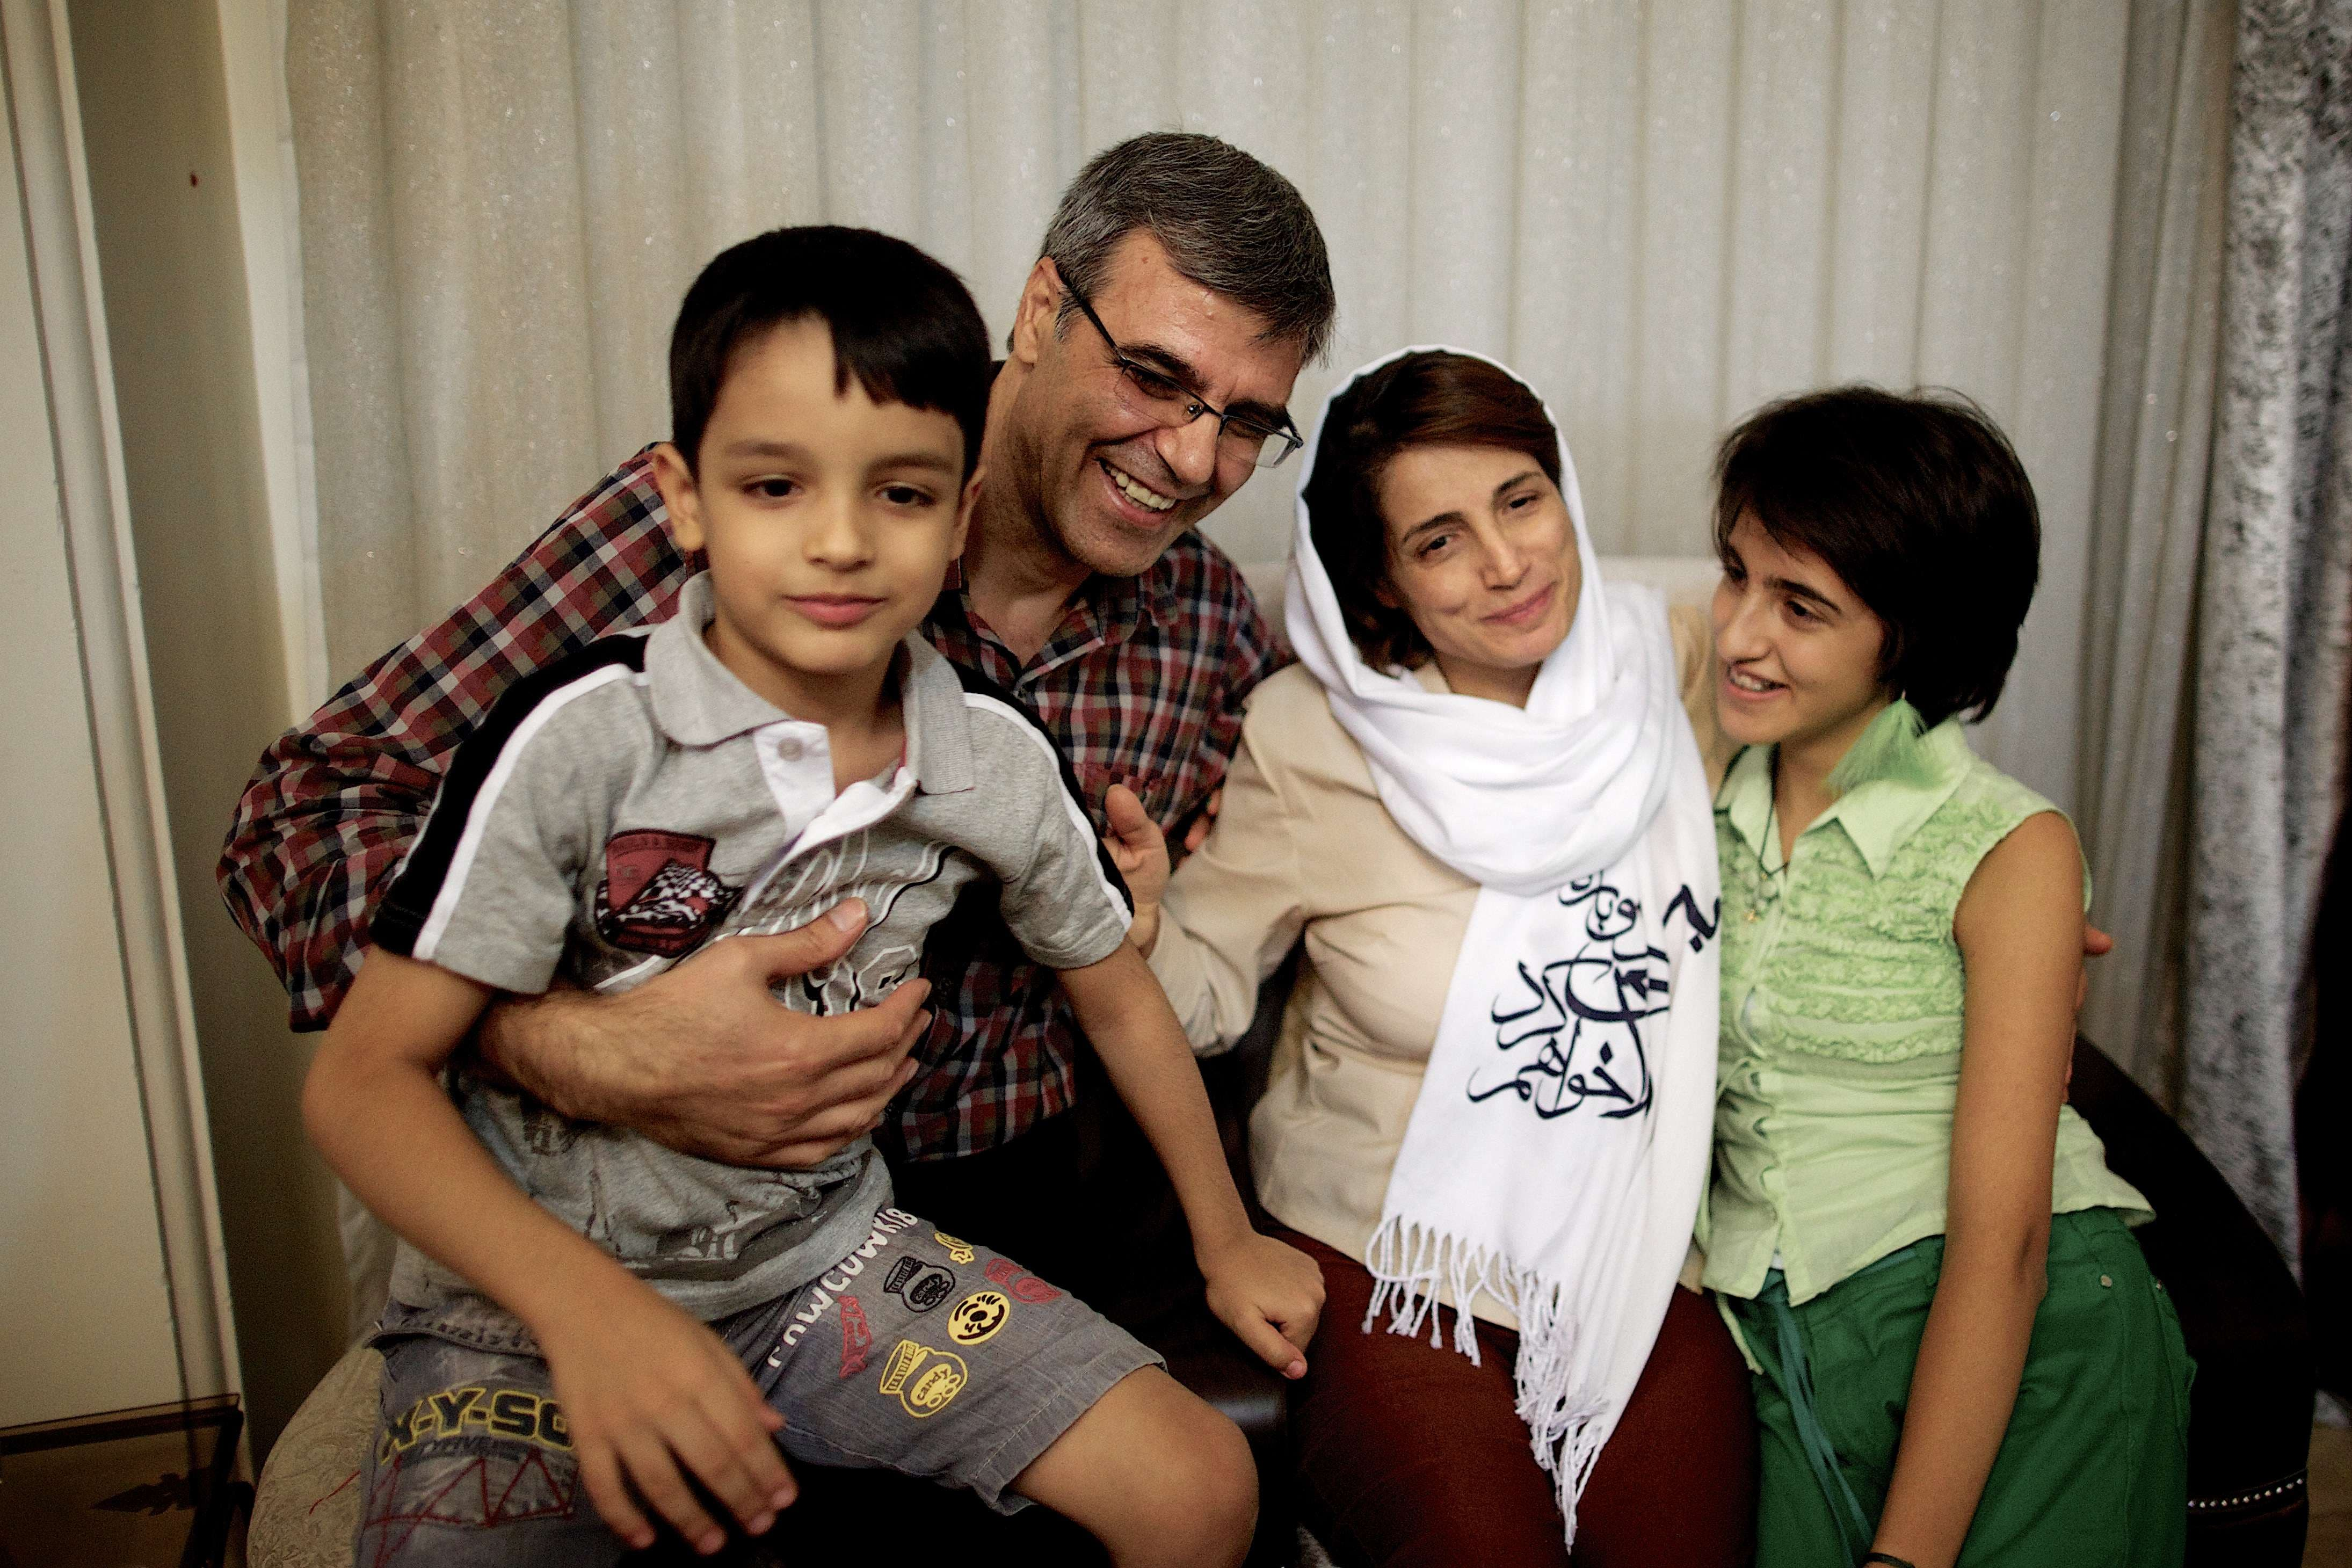 Iranian lawyer Nasrin Sotoudeh poses with her husband, Reza Khandan, her son Nima (L) and her Daughter Mehraveh (R ) at her house in Tehran on Sept. 18, 2013. (File Photo: AFP)